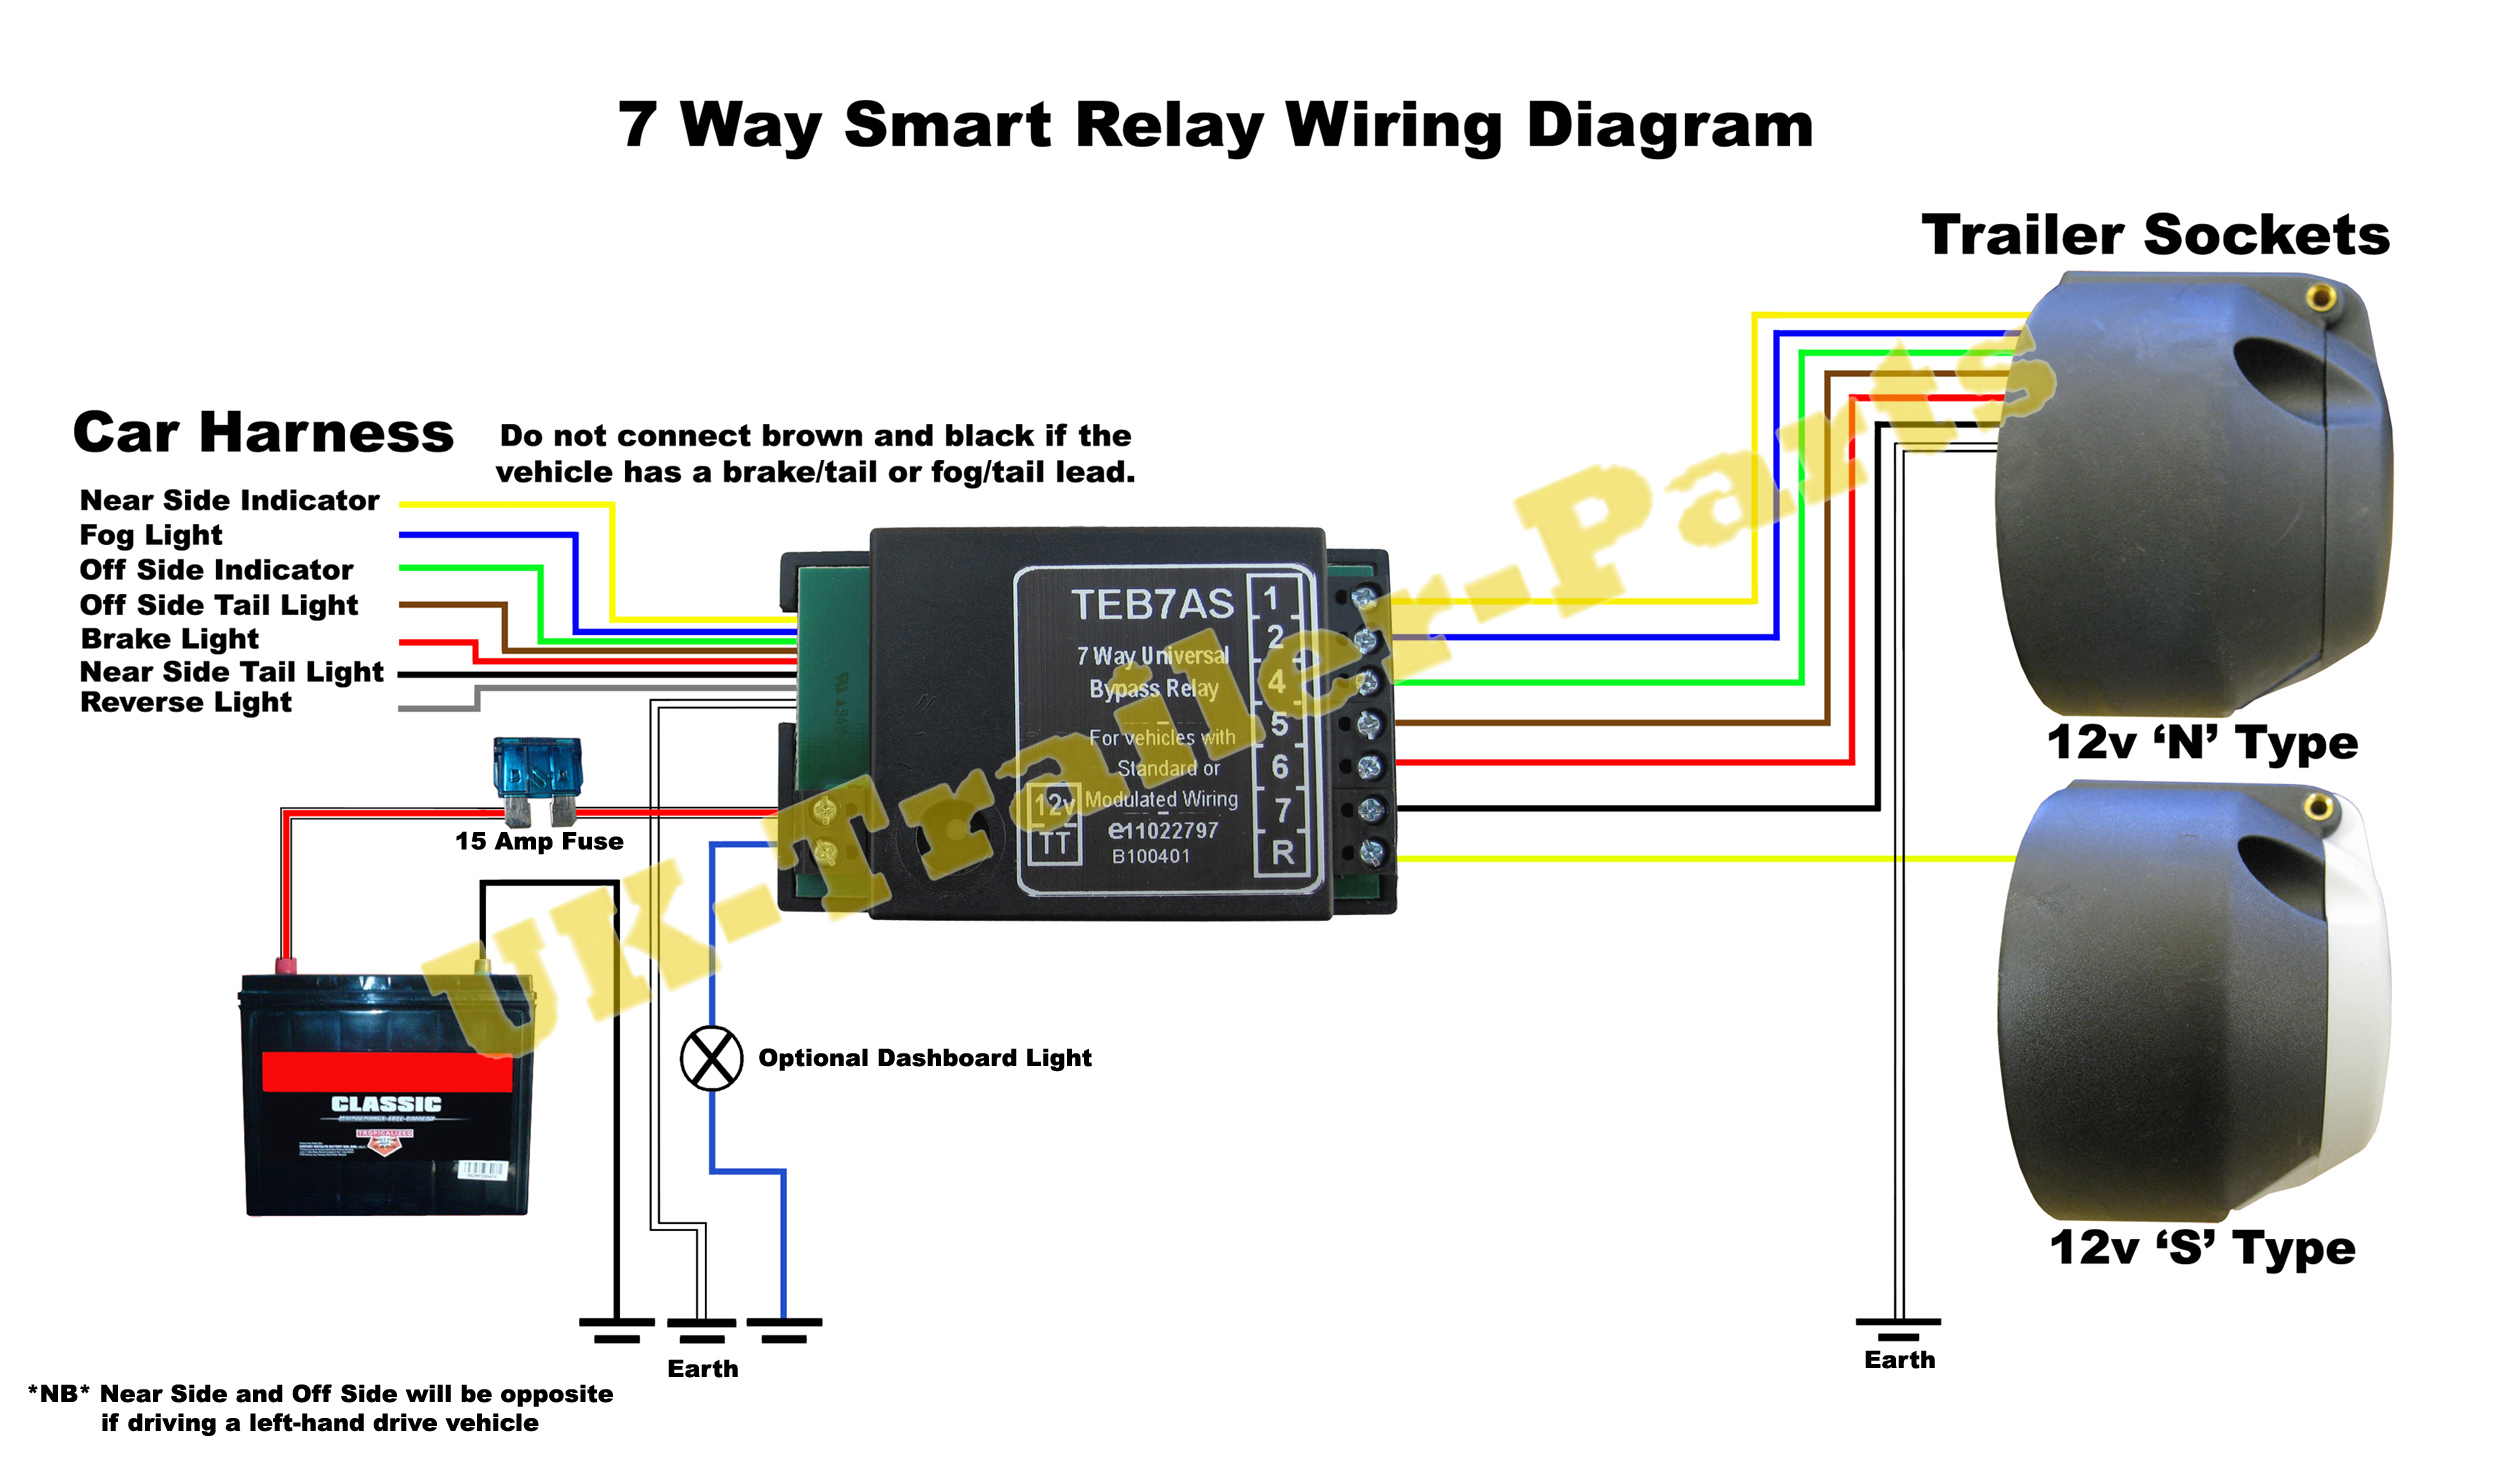 smart relay wiring diagram2 7 way universal bypass relay wiring diagram uk trailer parts volvo v70 towbar wiring diagram at couponss.co